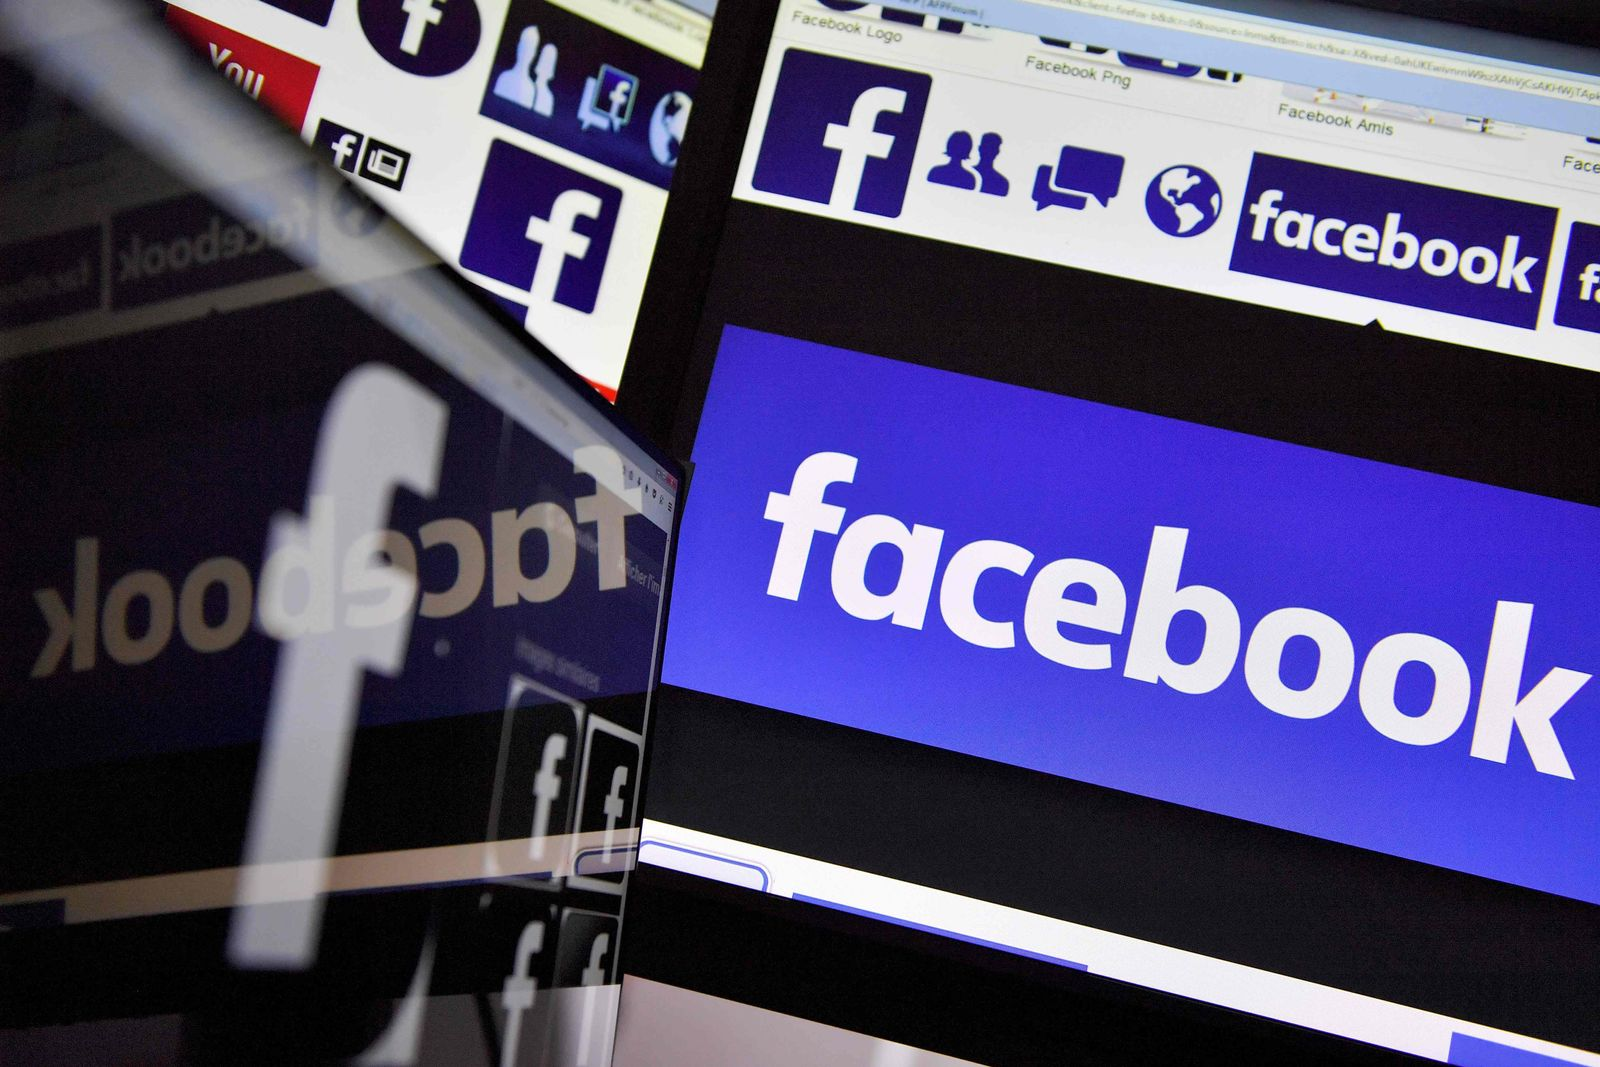 FILES-FRANCE-US-IT-LIFESTYLE-EARNINGS-FACEBOOK